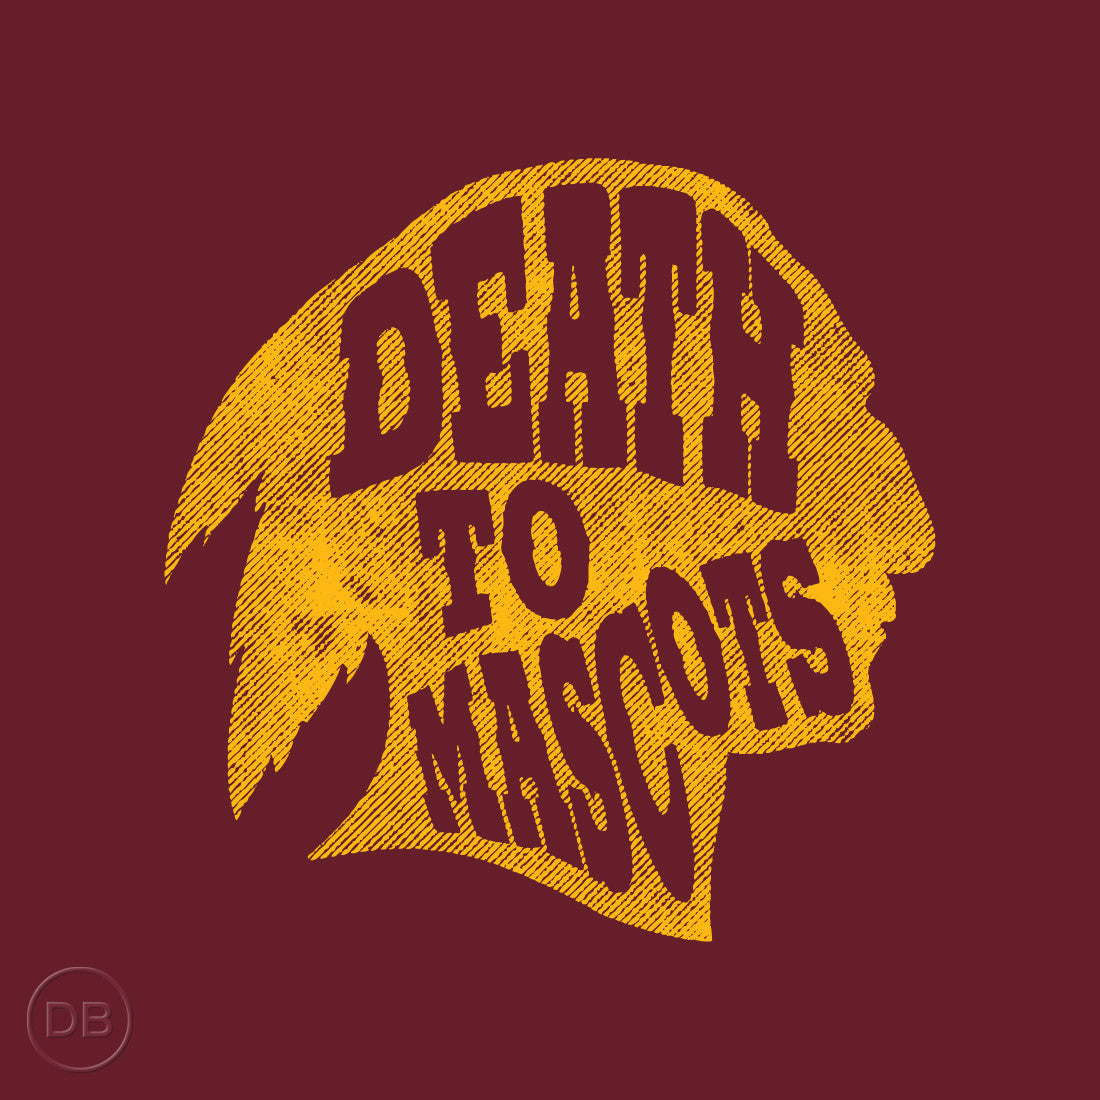 Death to Mascots I (Redskins) Tee by Indigenous artist David Bernie